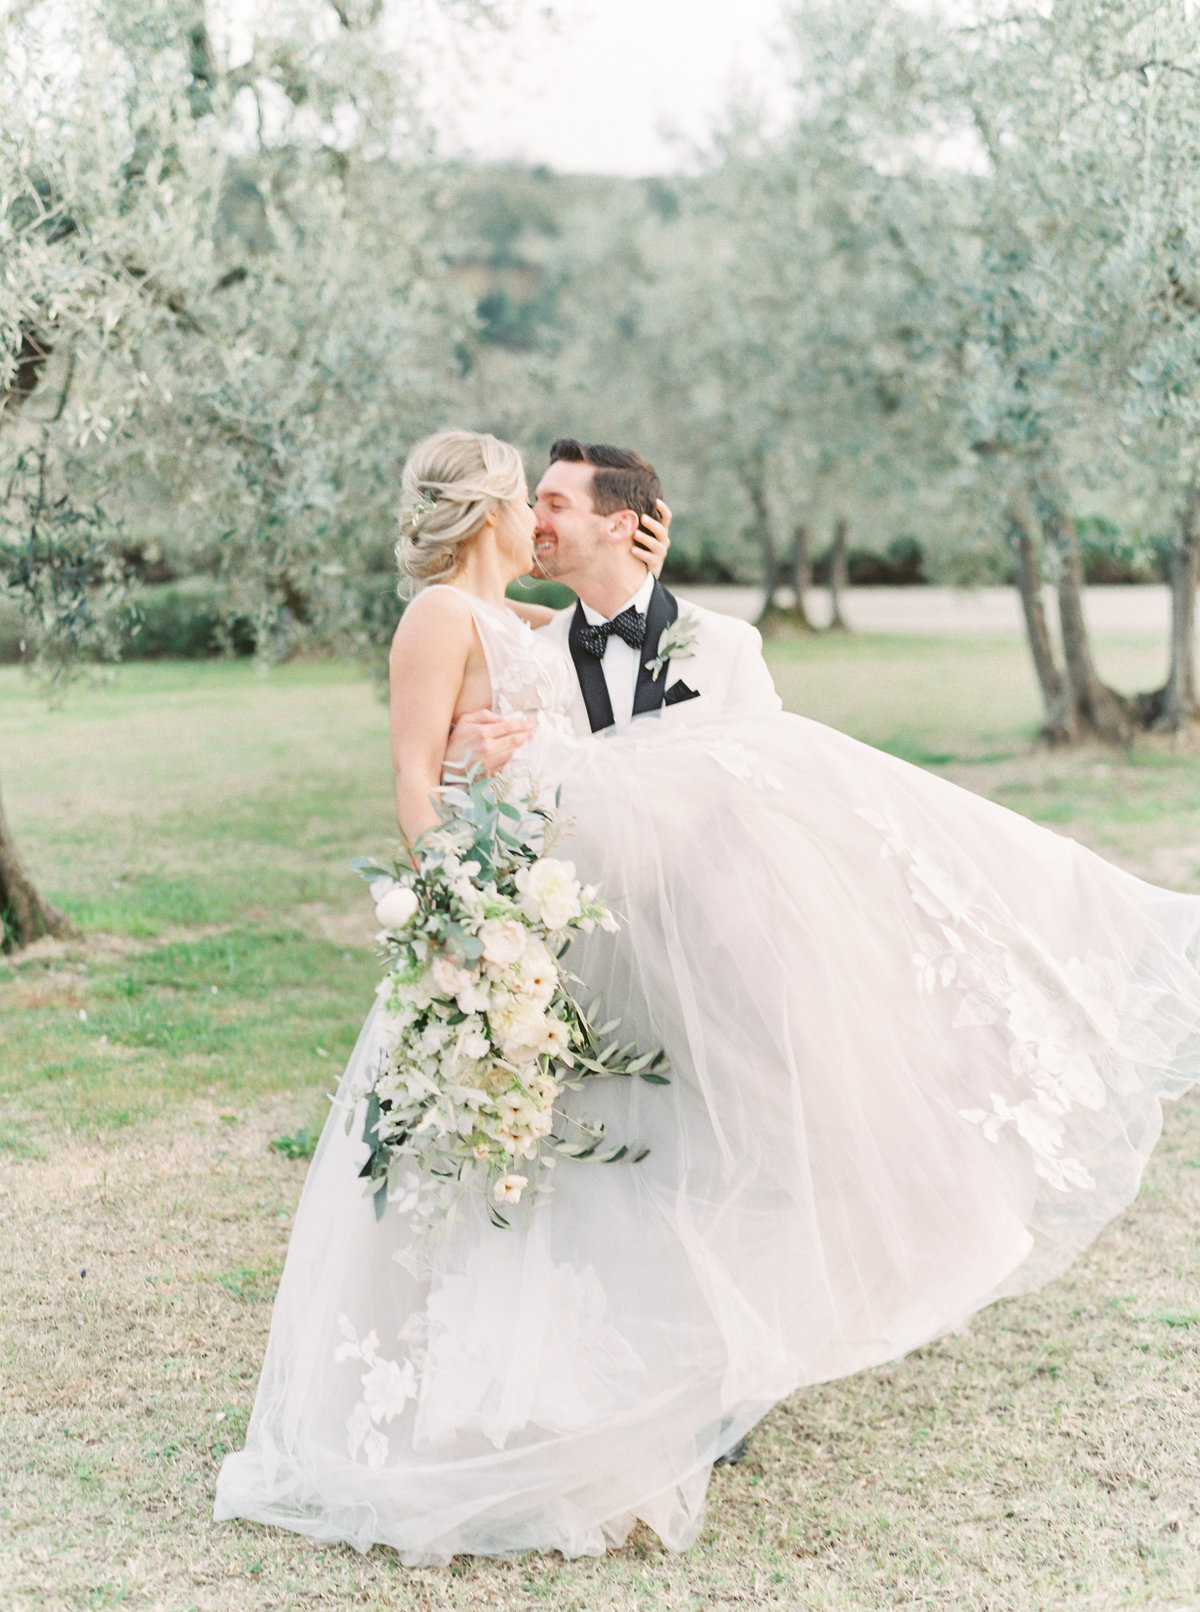 Tuscany Wedding Erica Nick - Lauren Fair Photography218